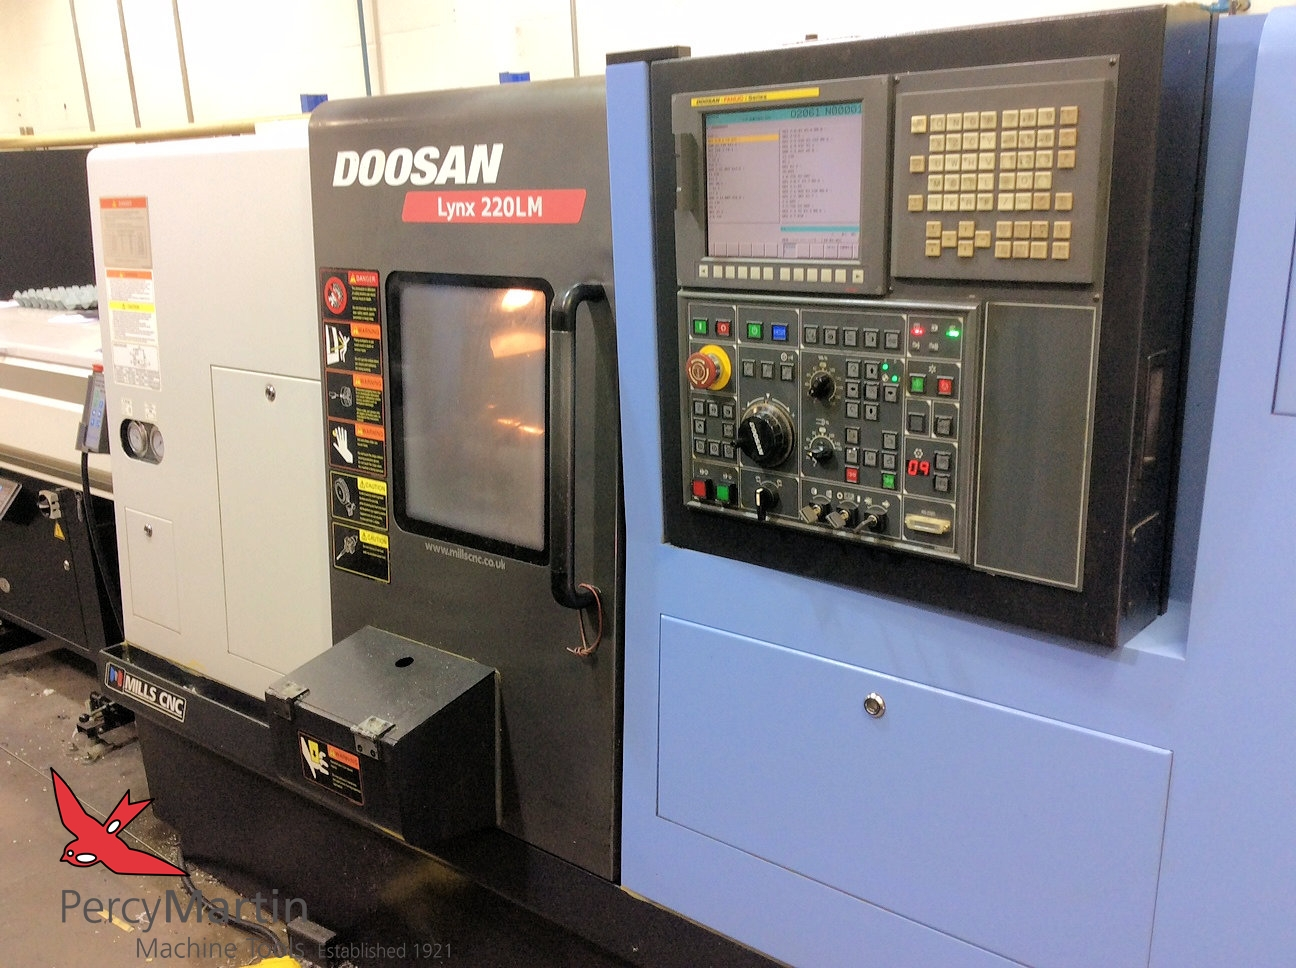 used Doosan Lynx 220LMB CNC Lathes with Milling for sale